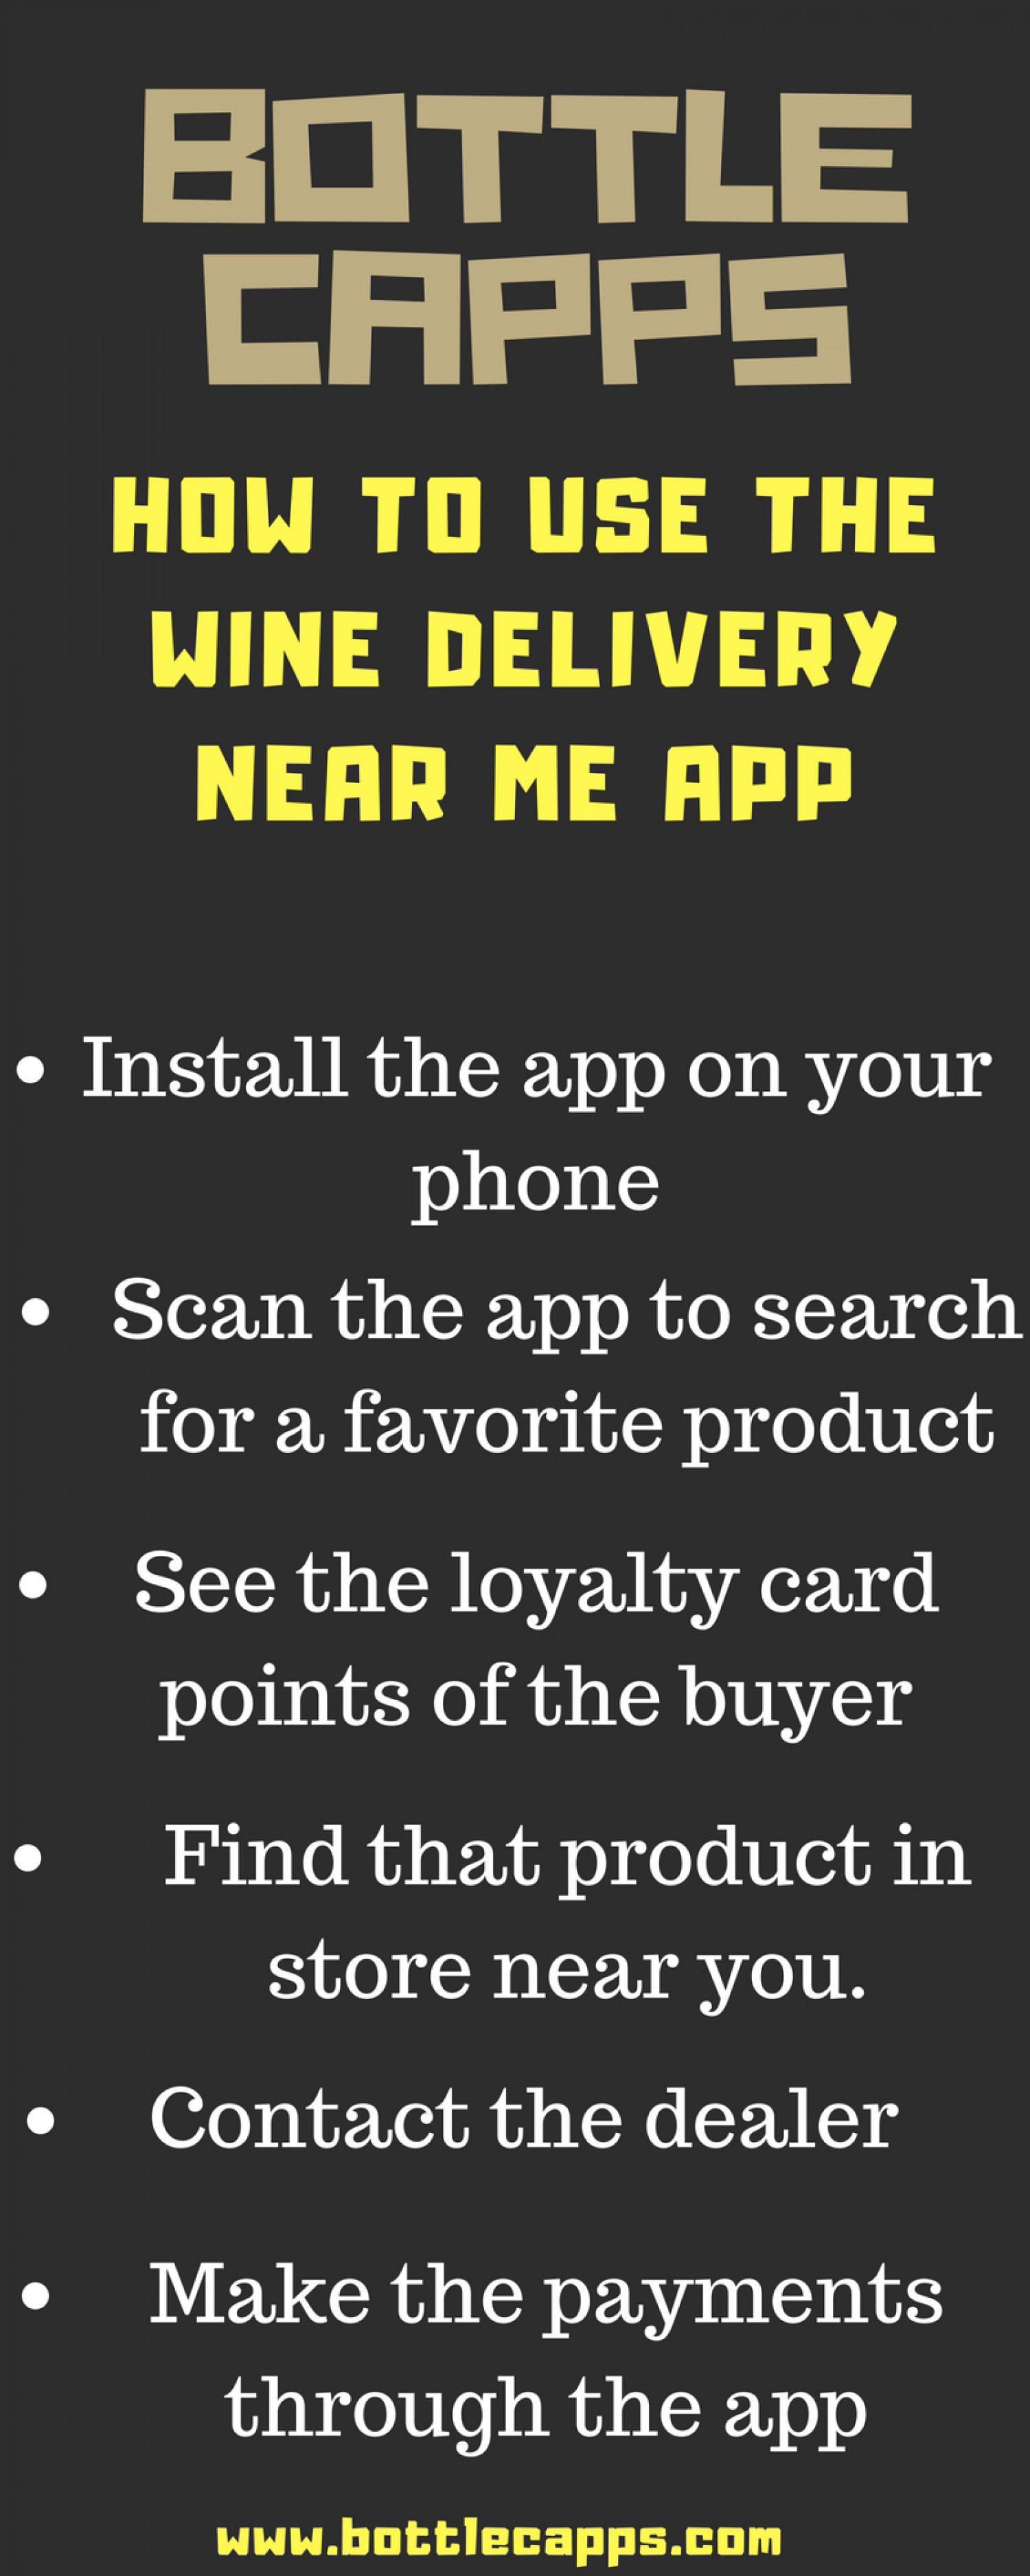 How to use the wine delivery near me app Infographic